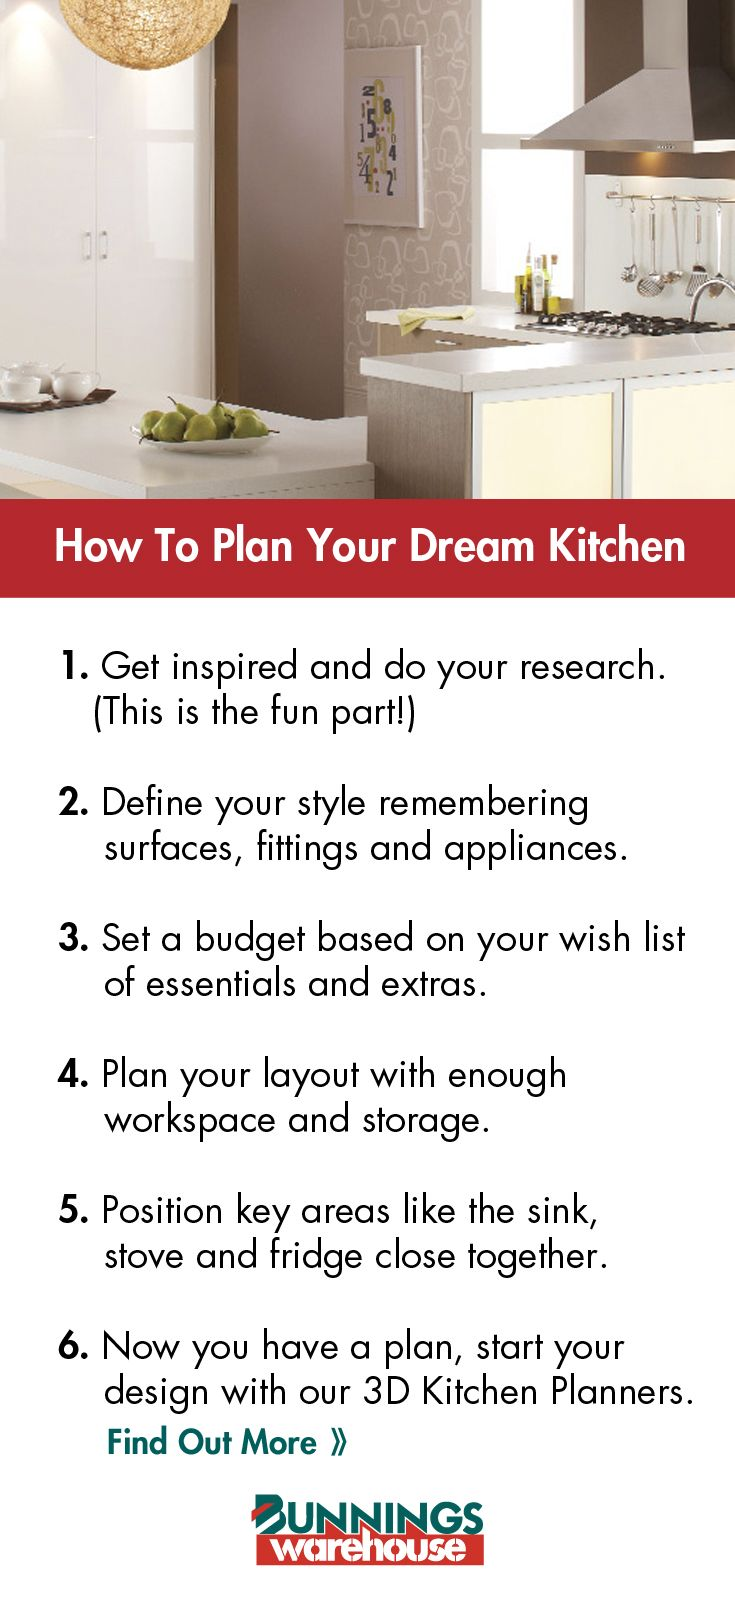 Planning is key to designing your perfect kitchen. Make